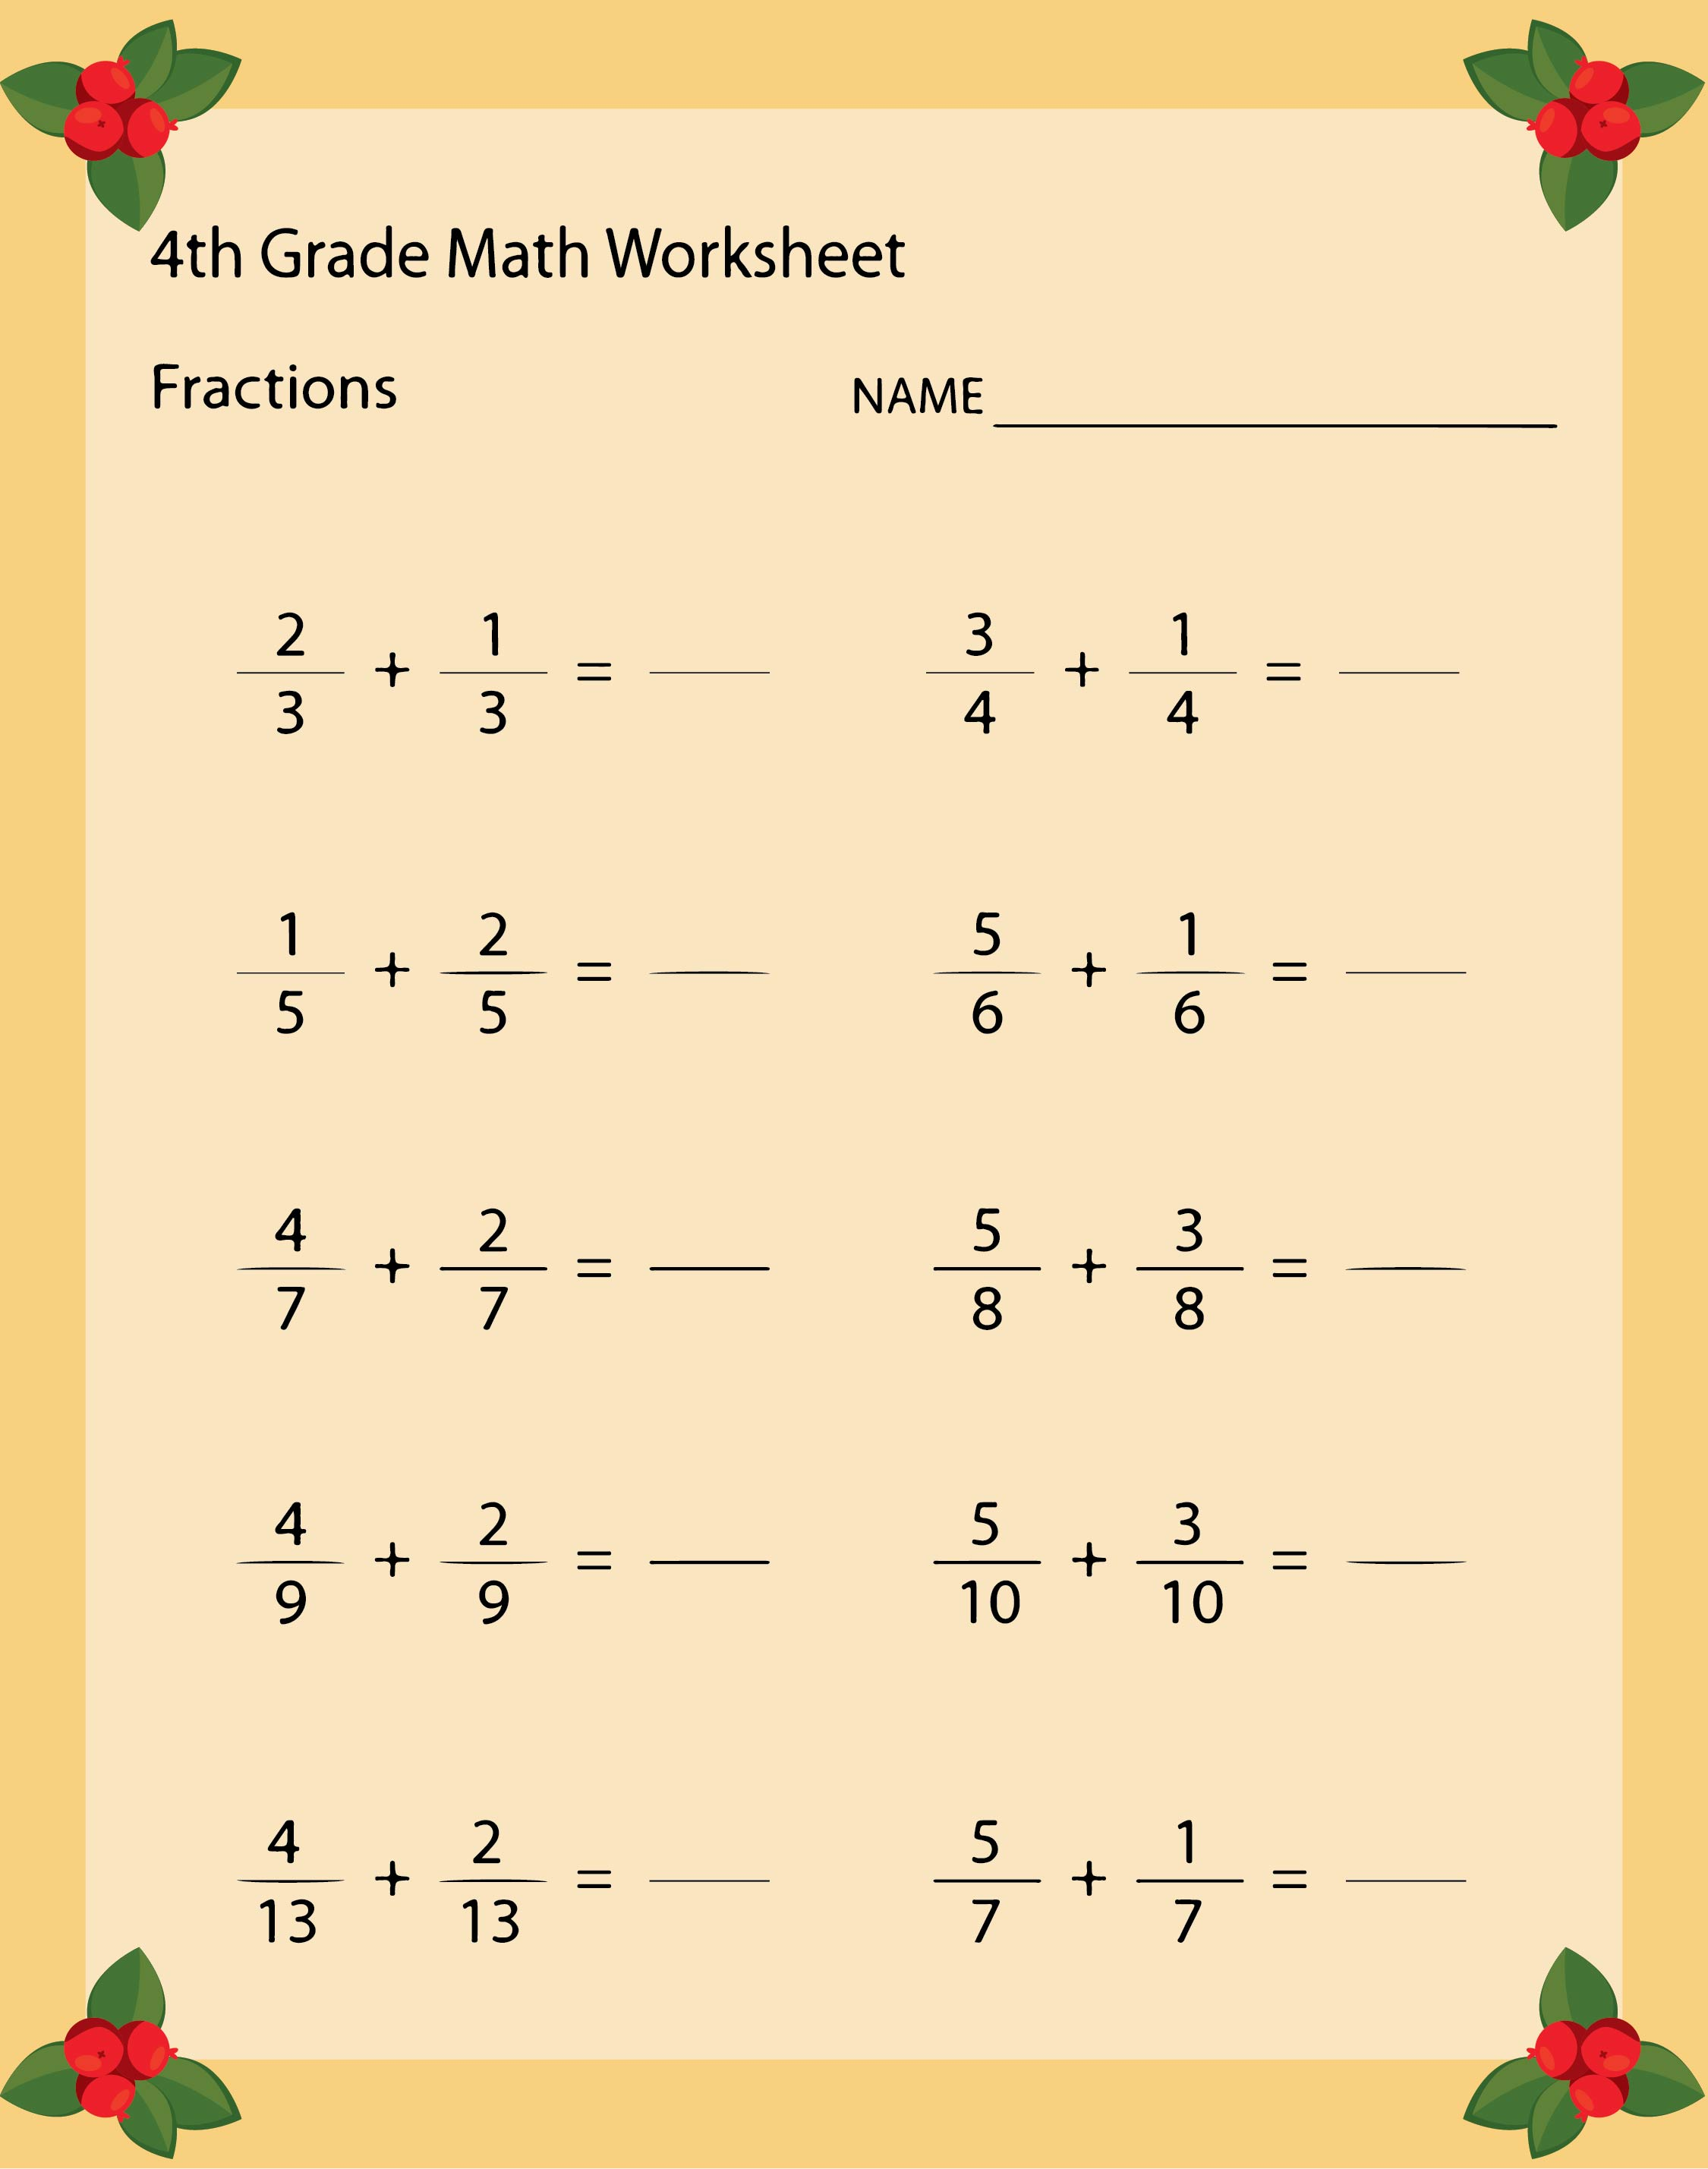 Free Math Worksheets For 4Th Grade – Math Worksheets 4th Grade